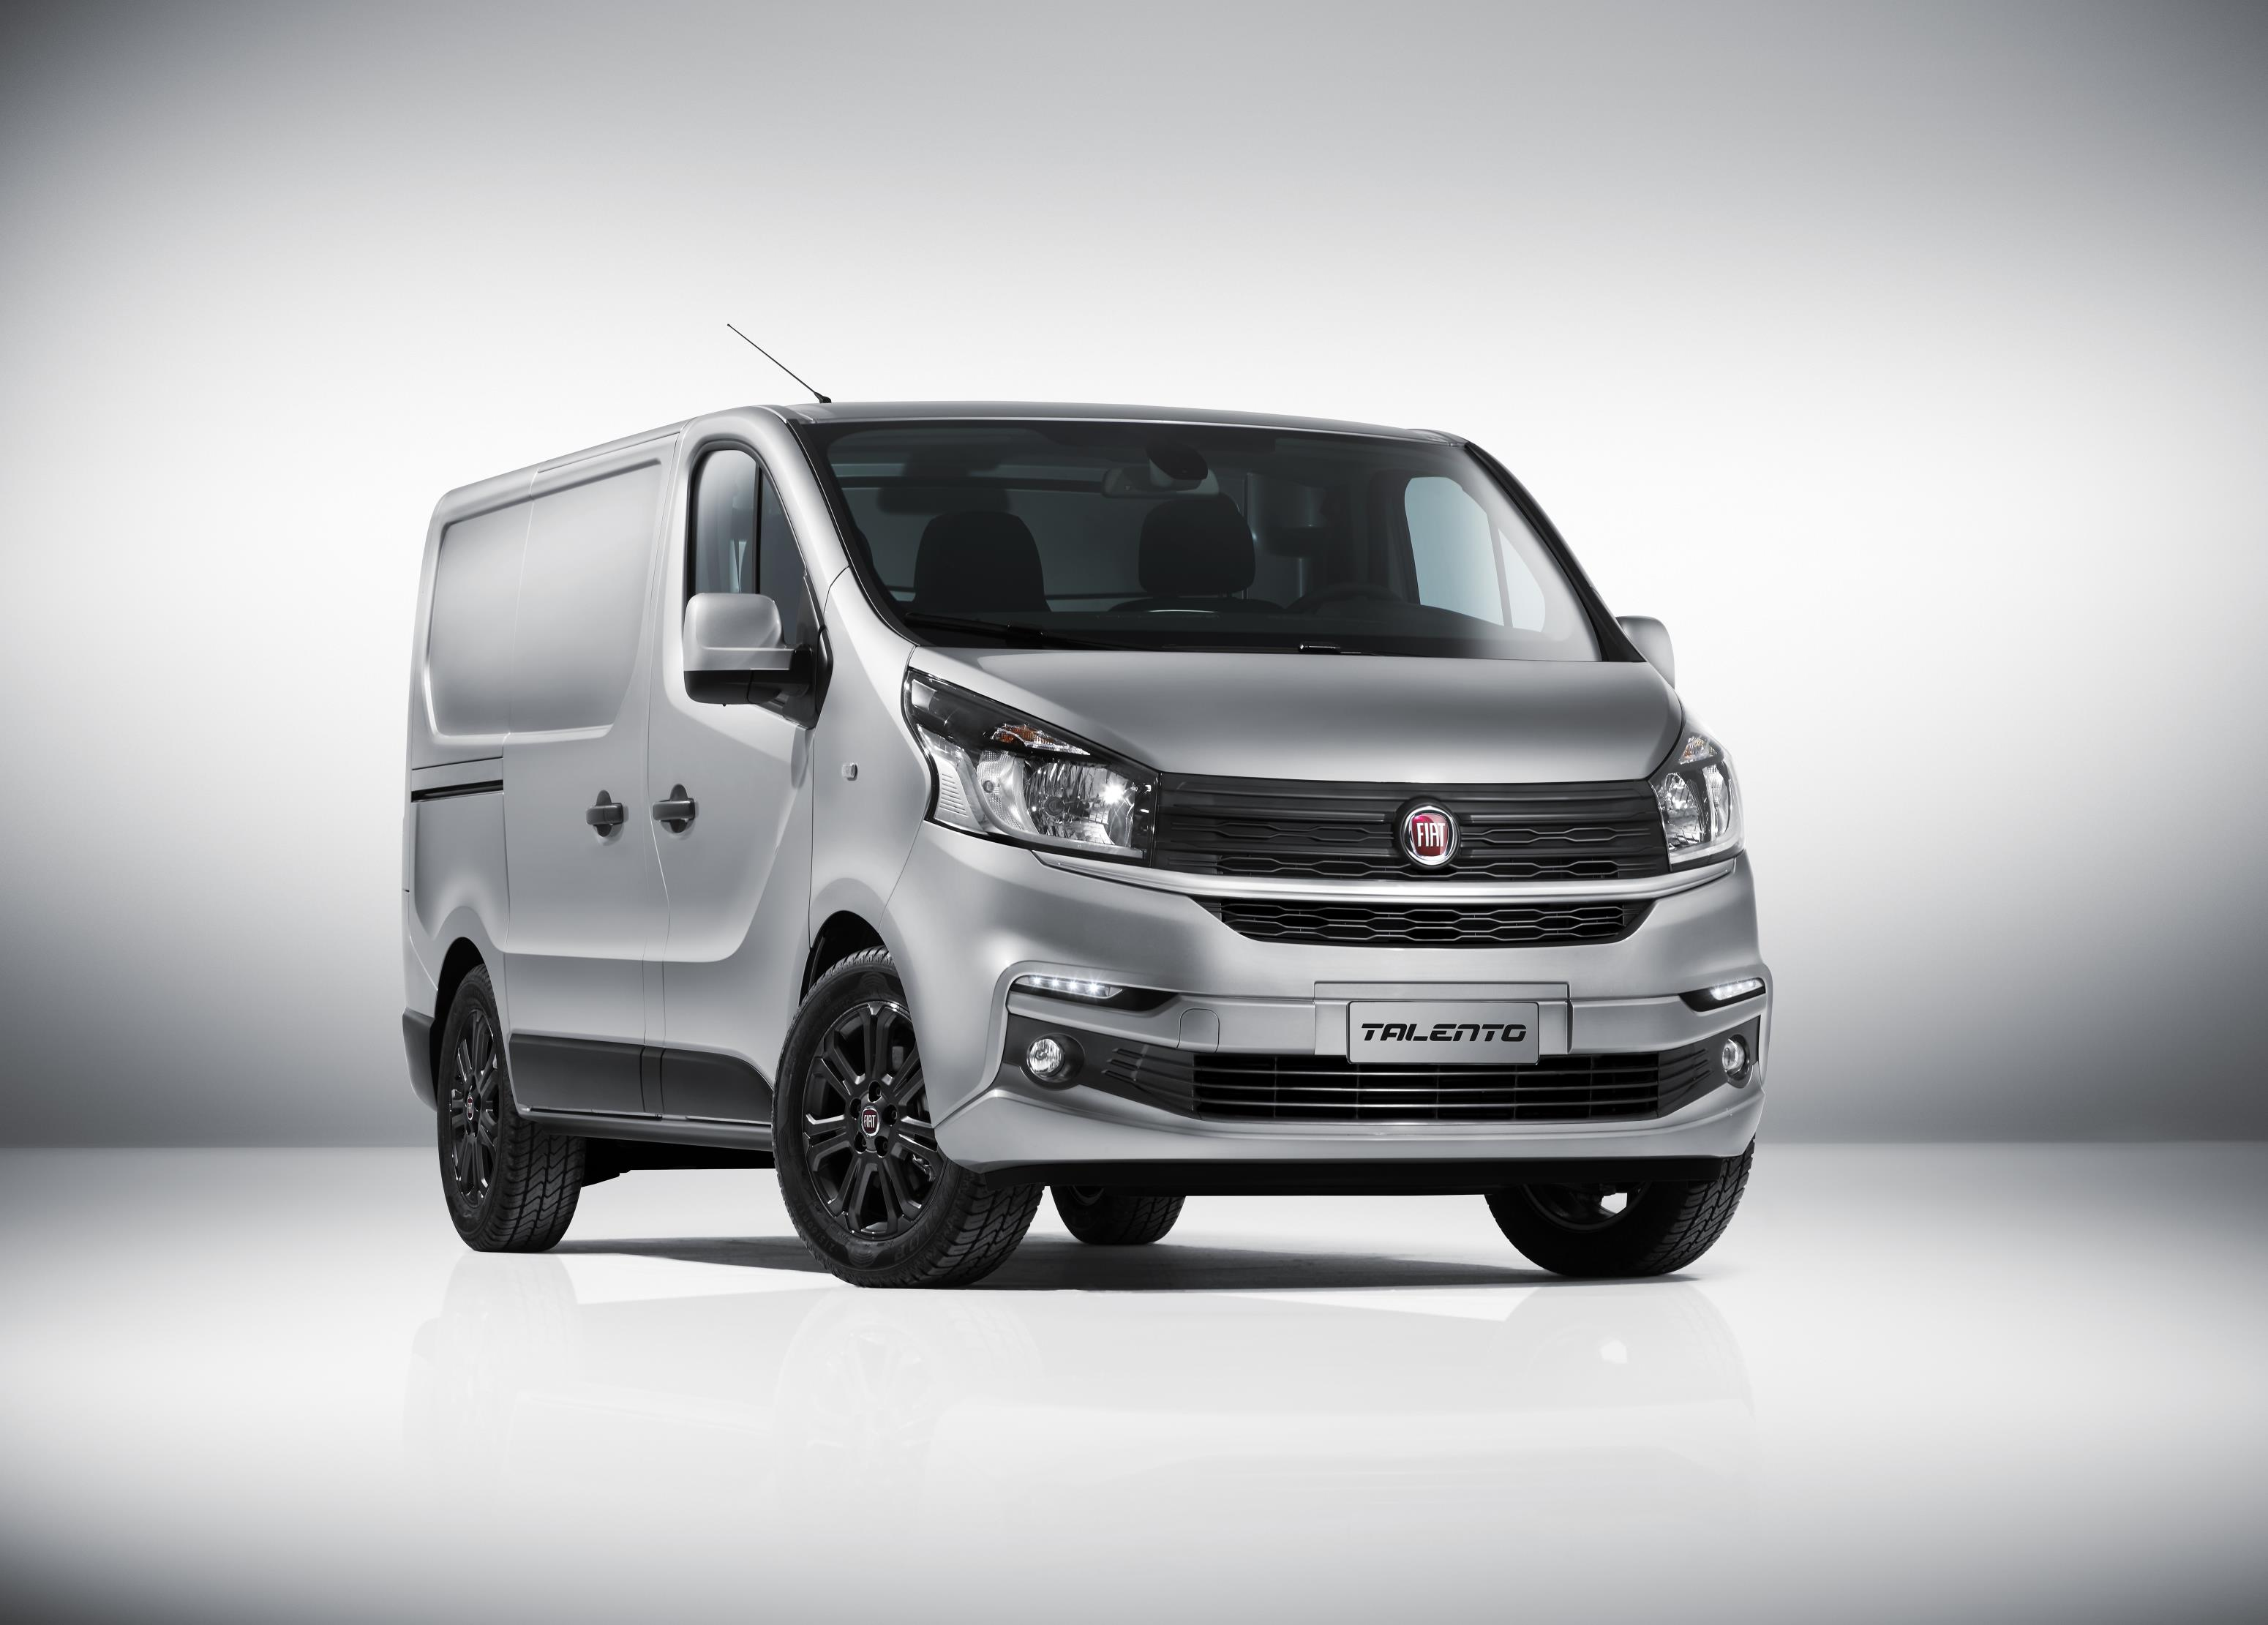 Car Carrier For Sale >> 2016 Fiat Talento to Go on Sale in May - autoevolution